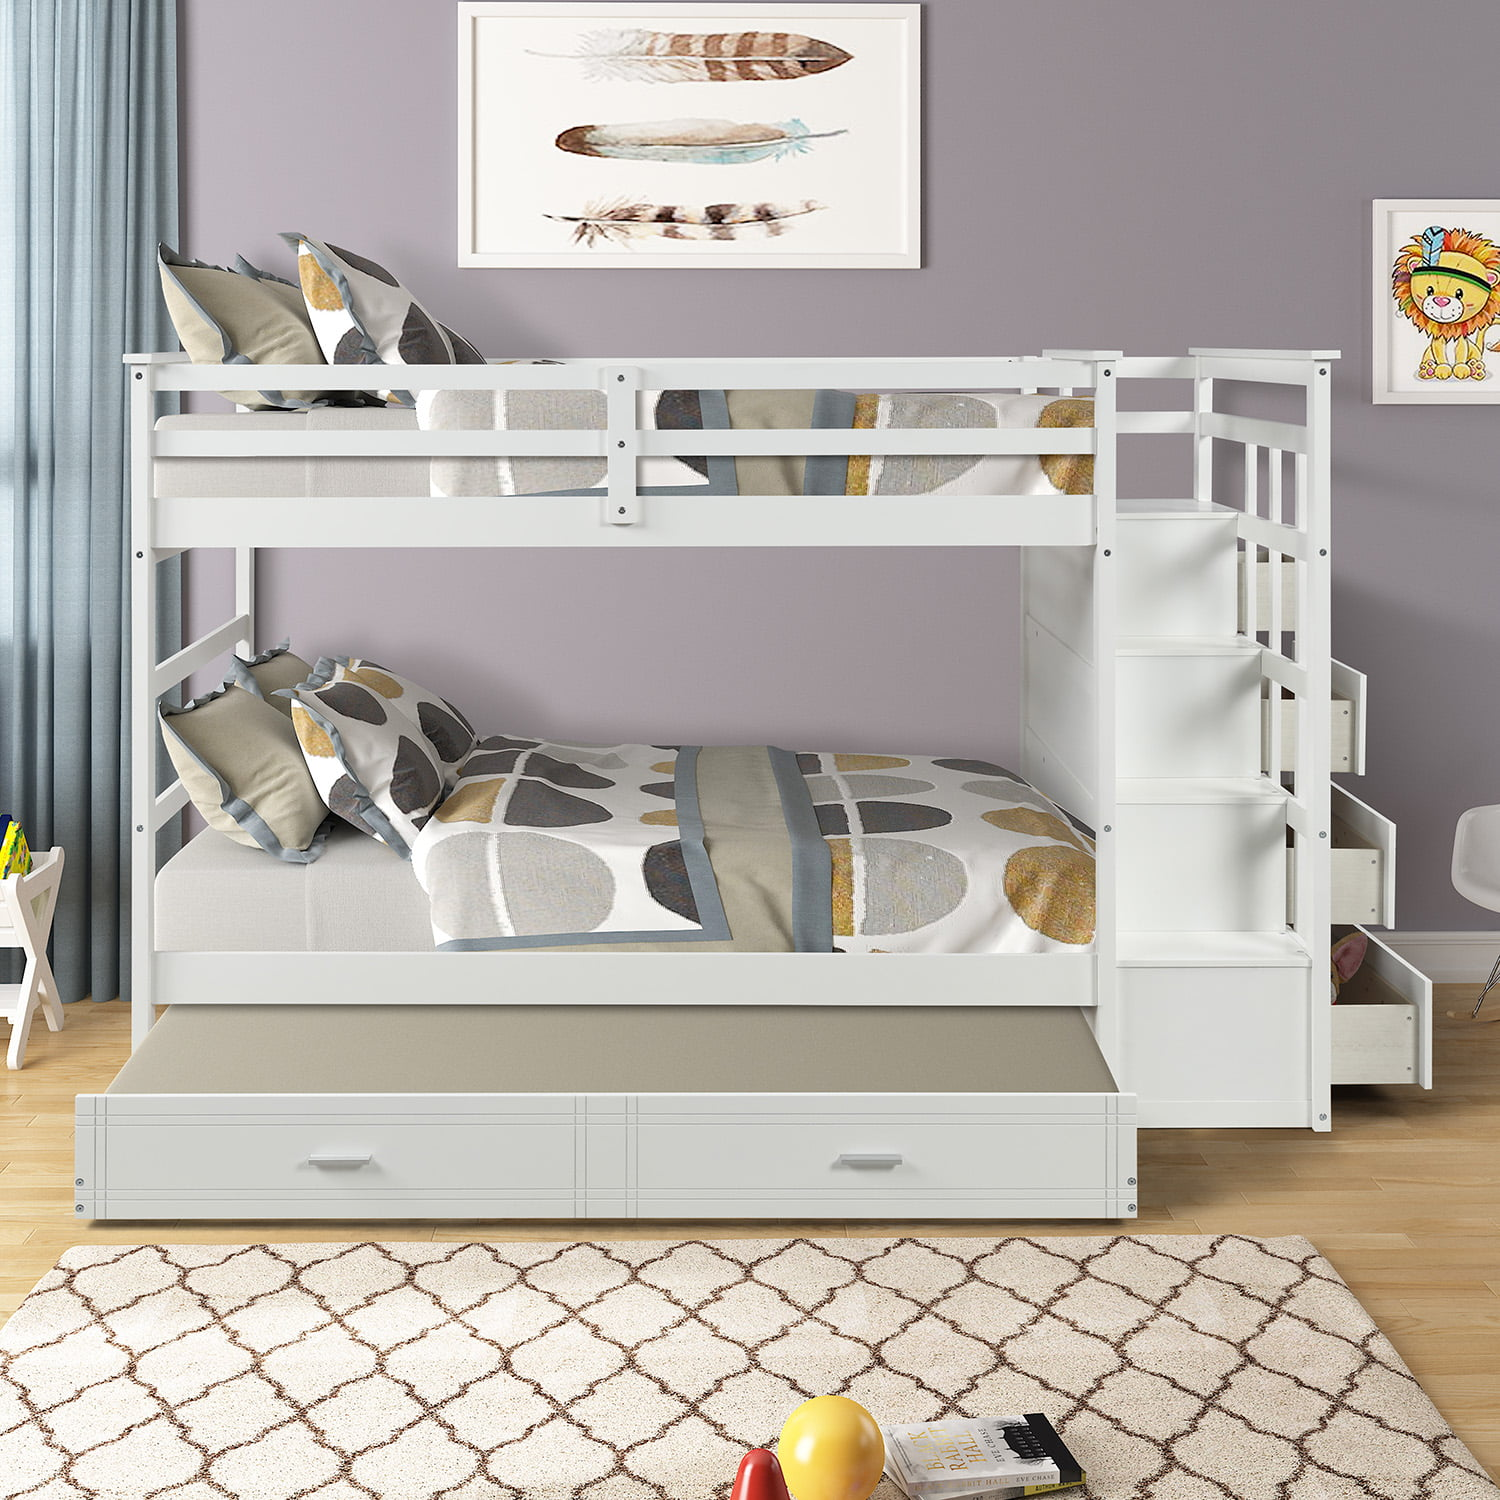 Picture of: Wood Bunk Bed Twin Bunk Beds For Kids 91 3 X 42 4 X 65 7 Solid Wood Bunk Bed With 3 Twin Bed Frame And 4 Drawers Sturdy 4 Step Ladder Full Length Guardrails Easy Assembly